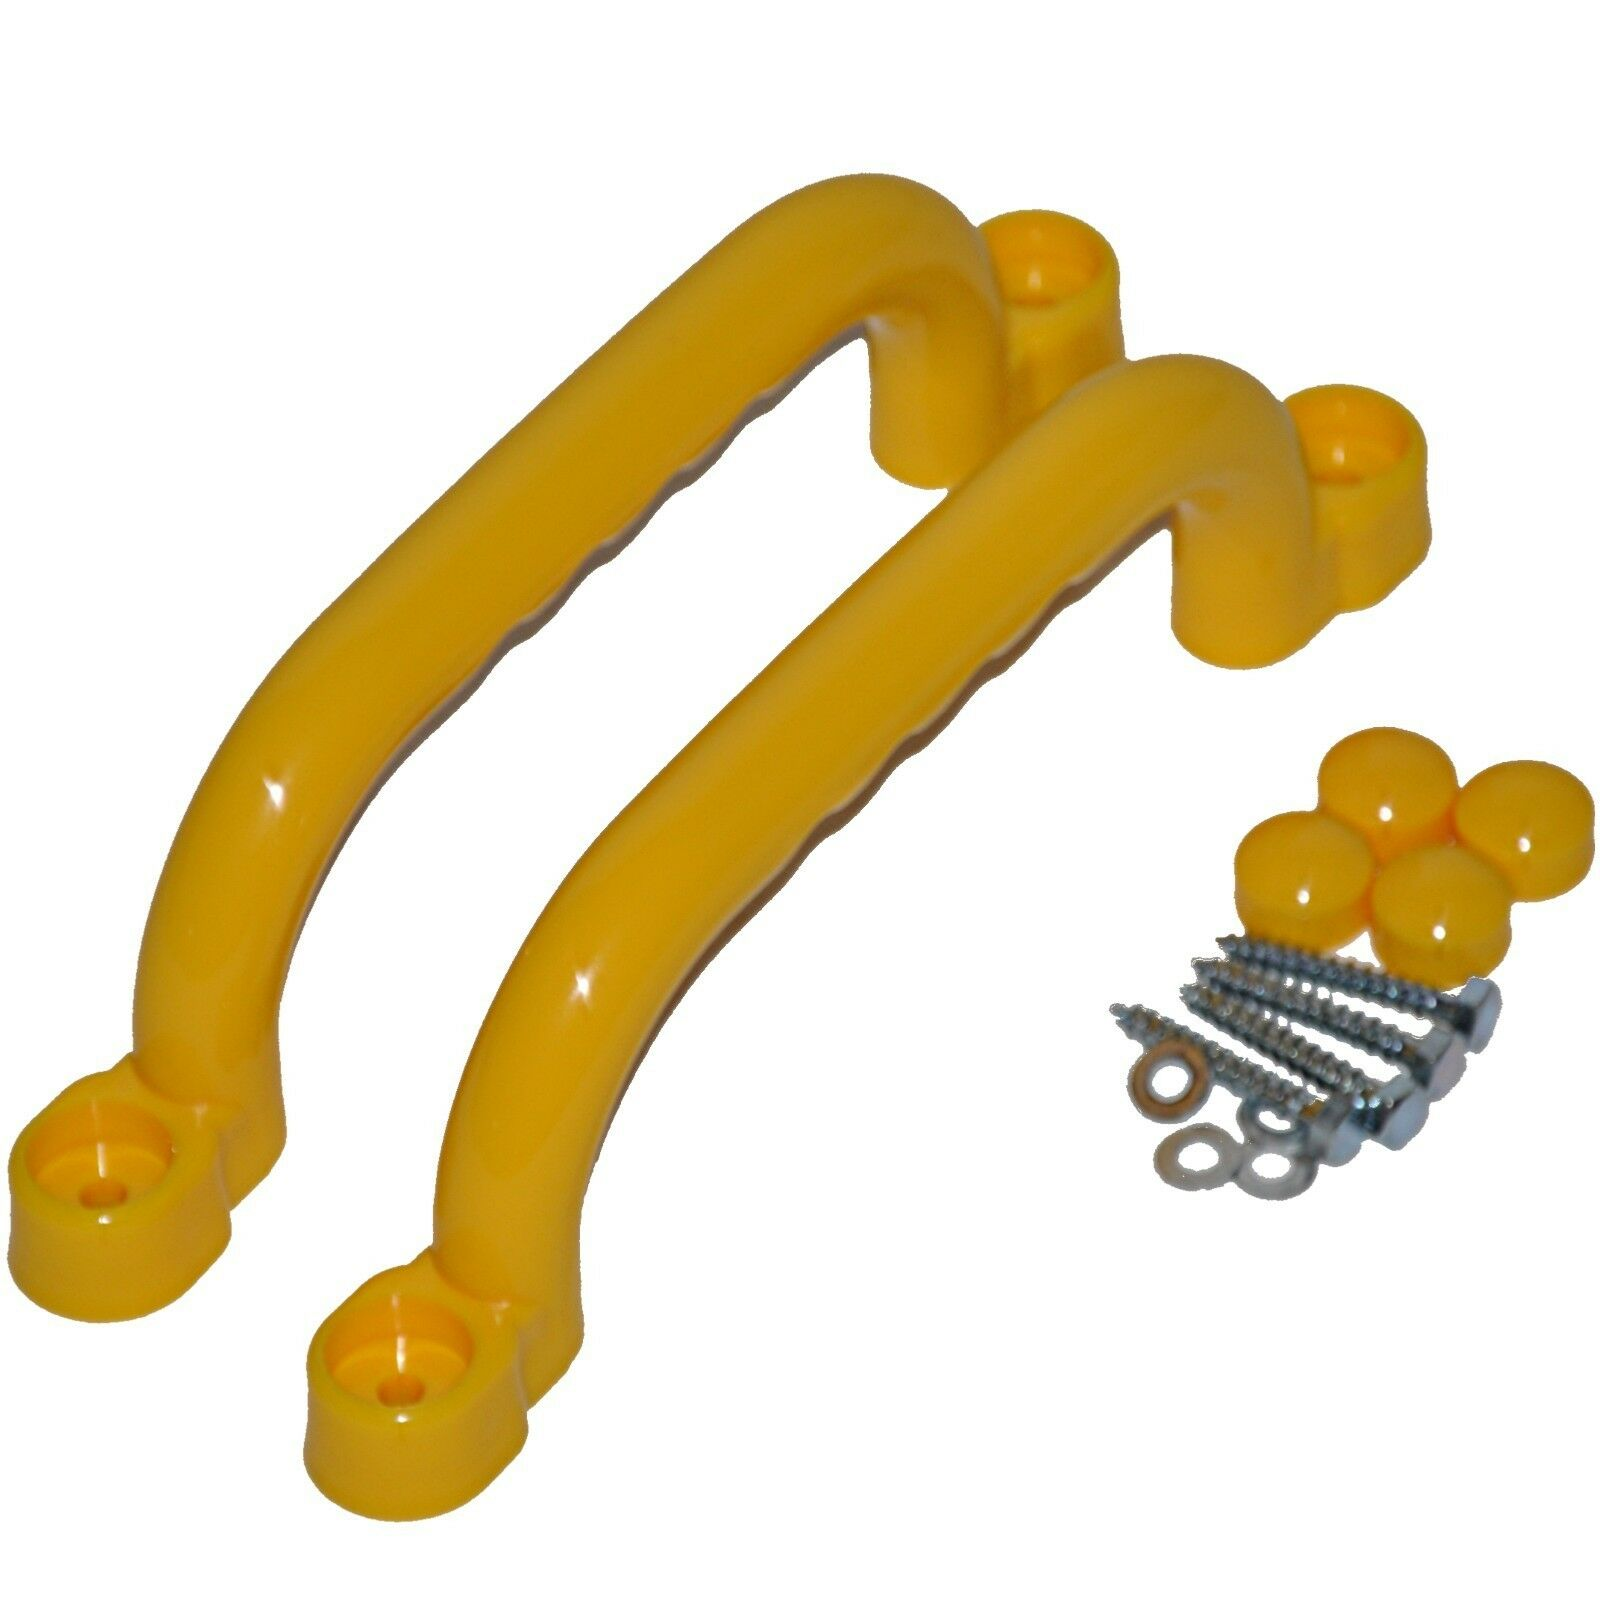 Handles Hand Grips Plastic 2er Set 310x70mm For Game Tower Playground